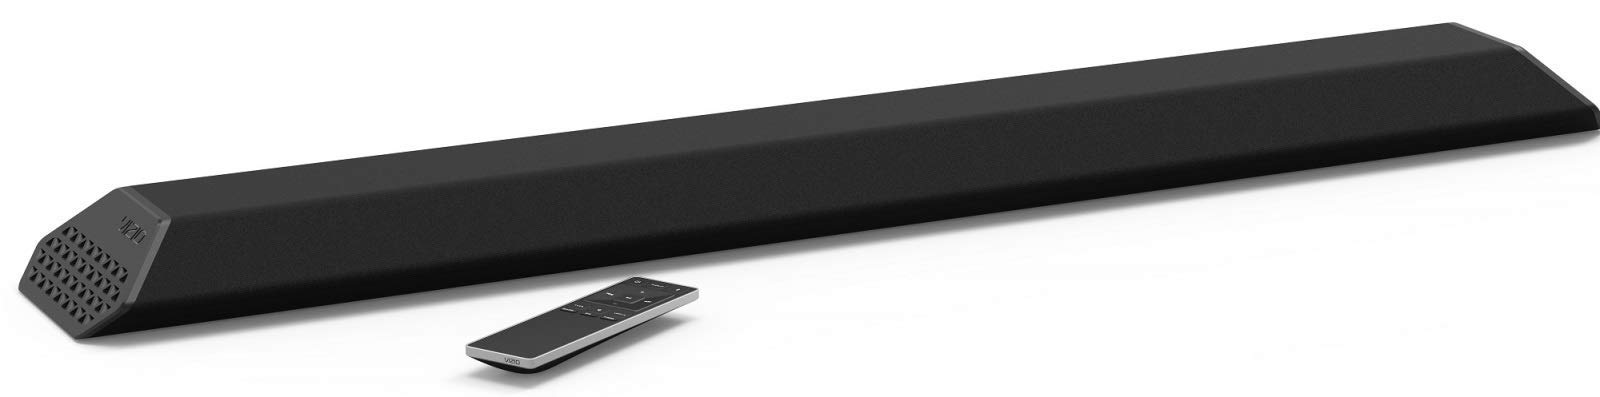 Vizio SB362An-F6 36'' 2.1 Channel Soundbar with Built-In Dual Subwoofers by VIZIO